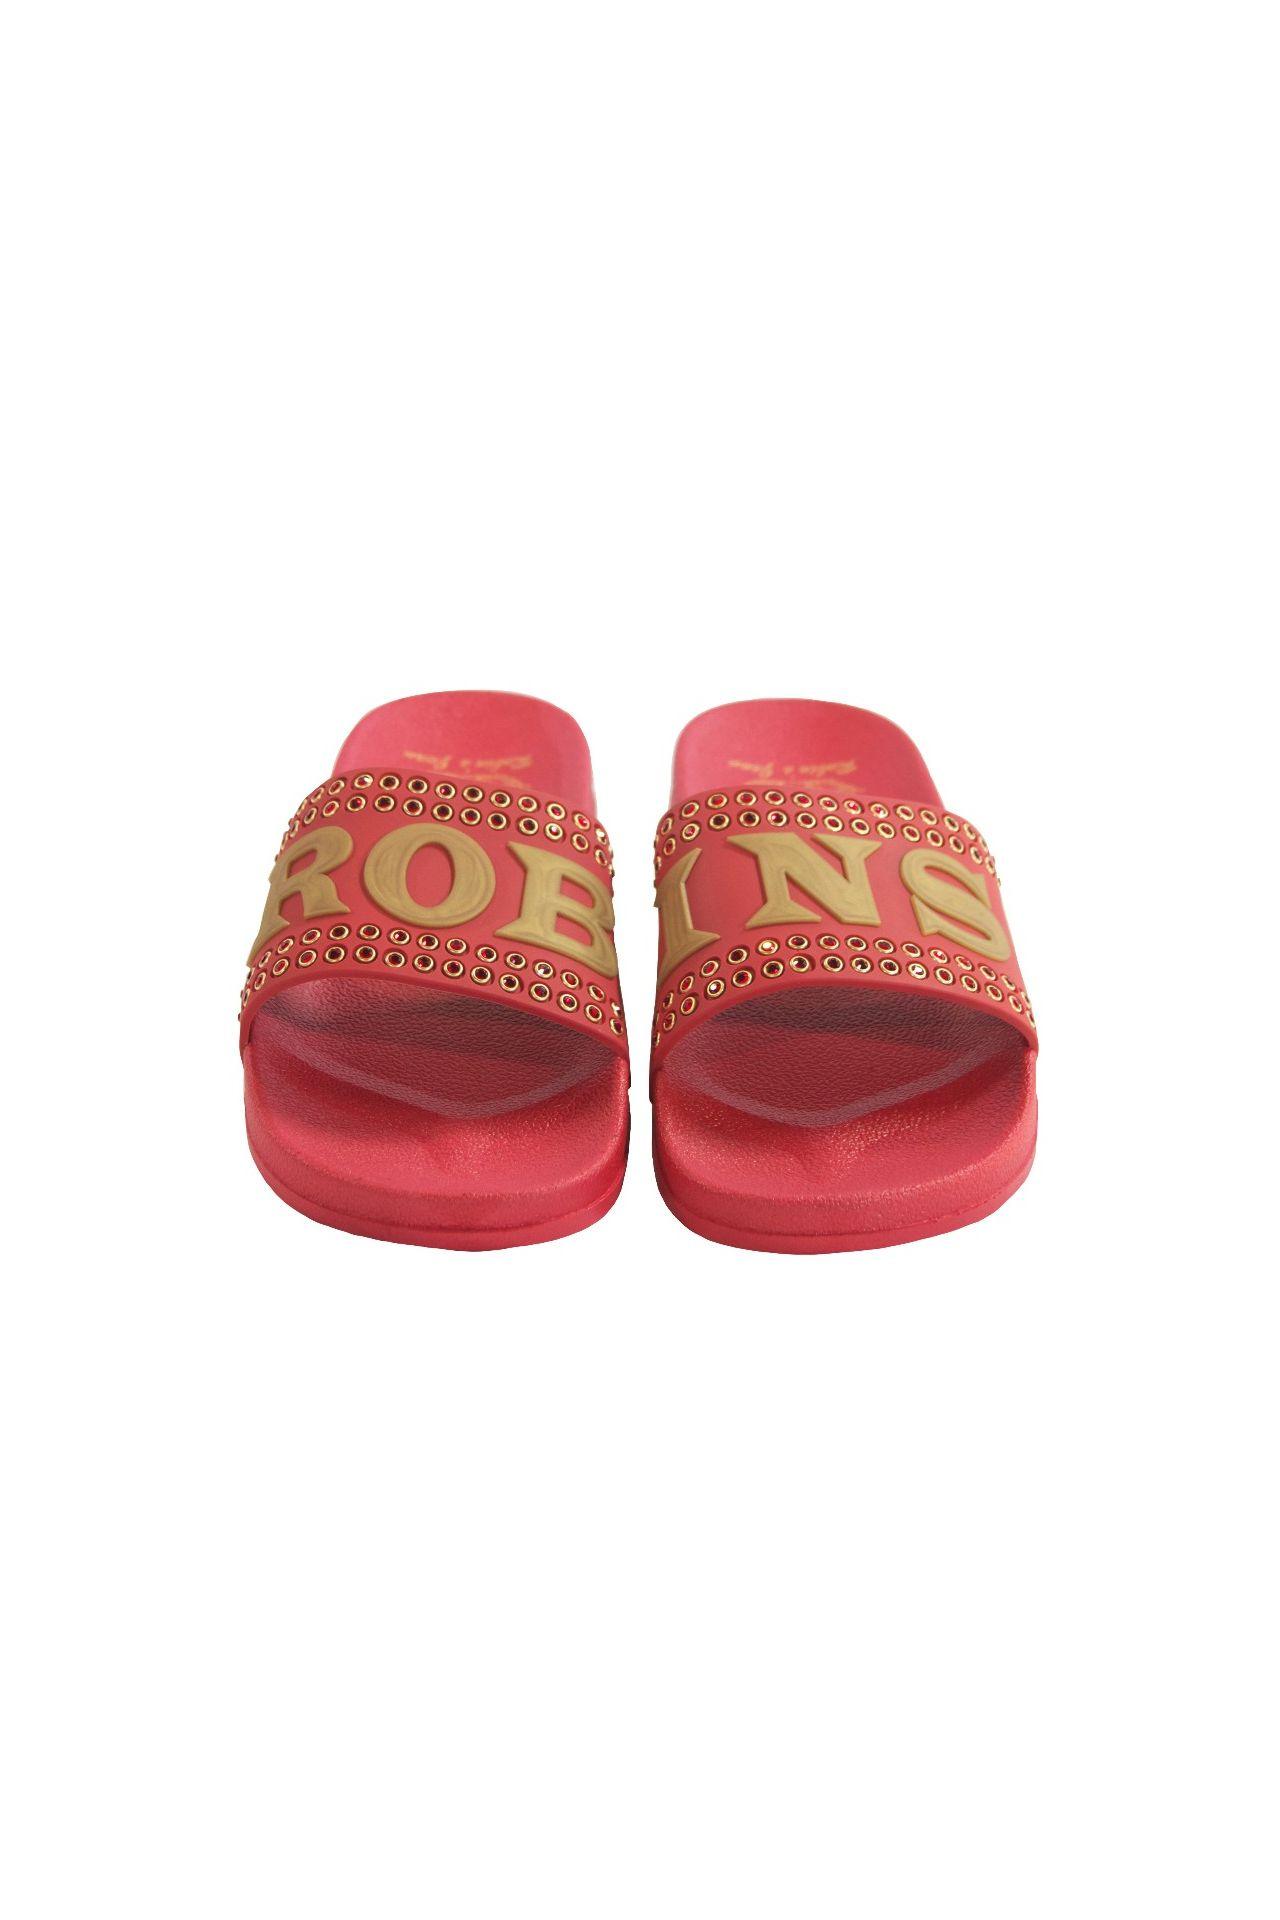 ROBIN SLIDES IN RED WITH RED CRYSTALS